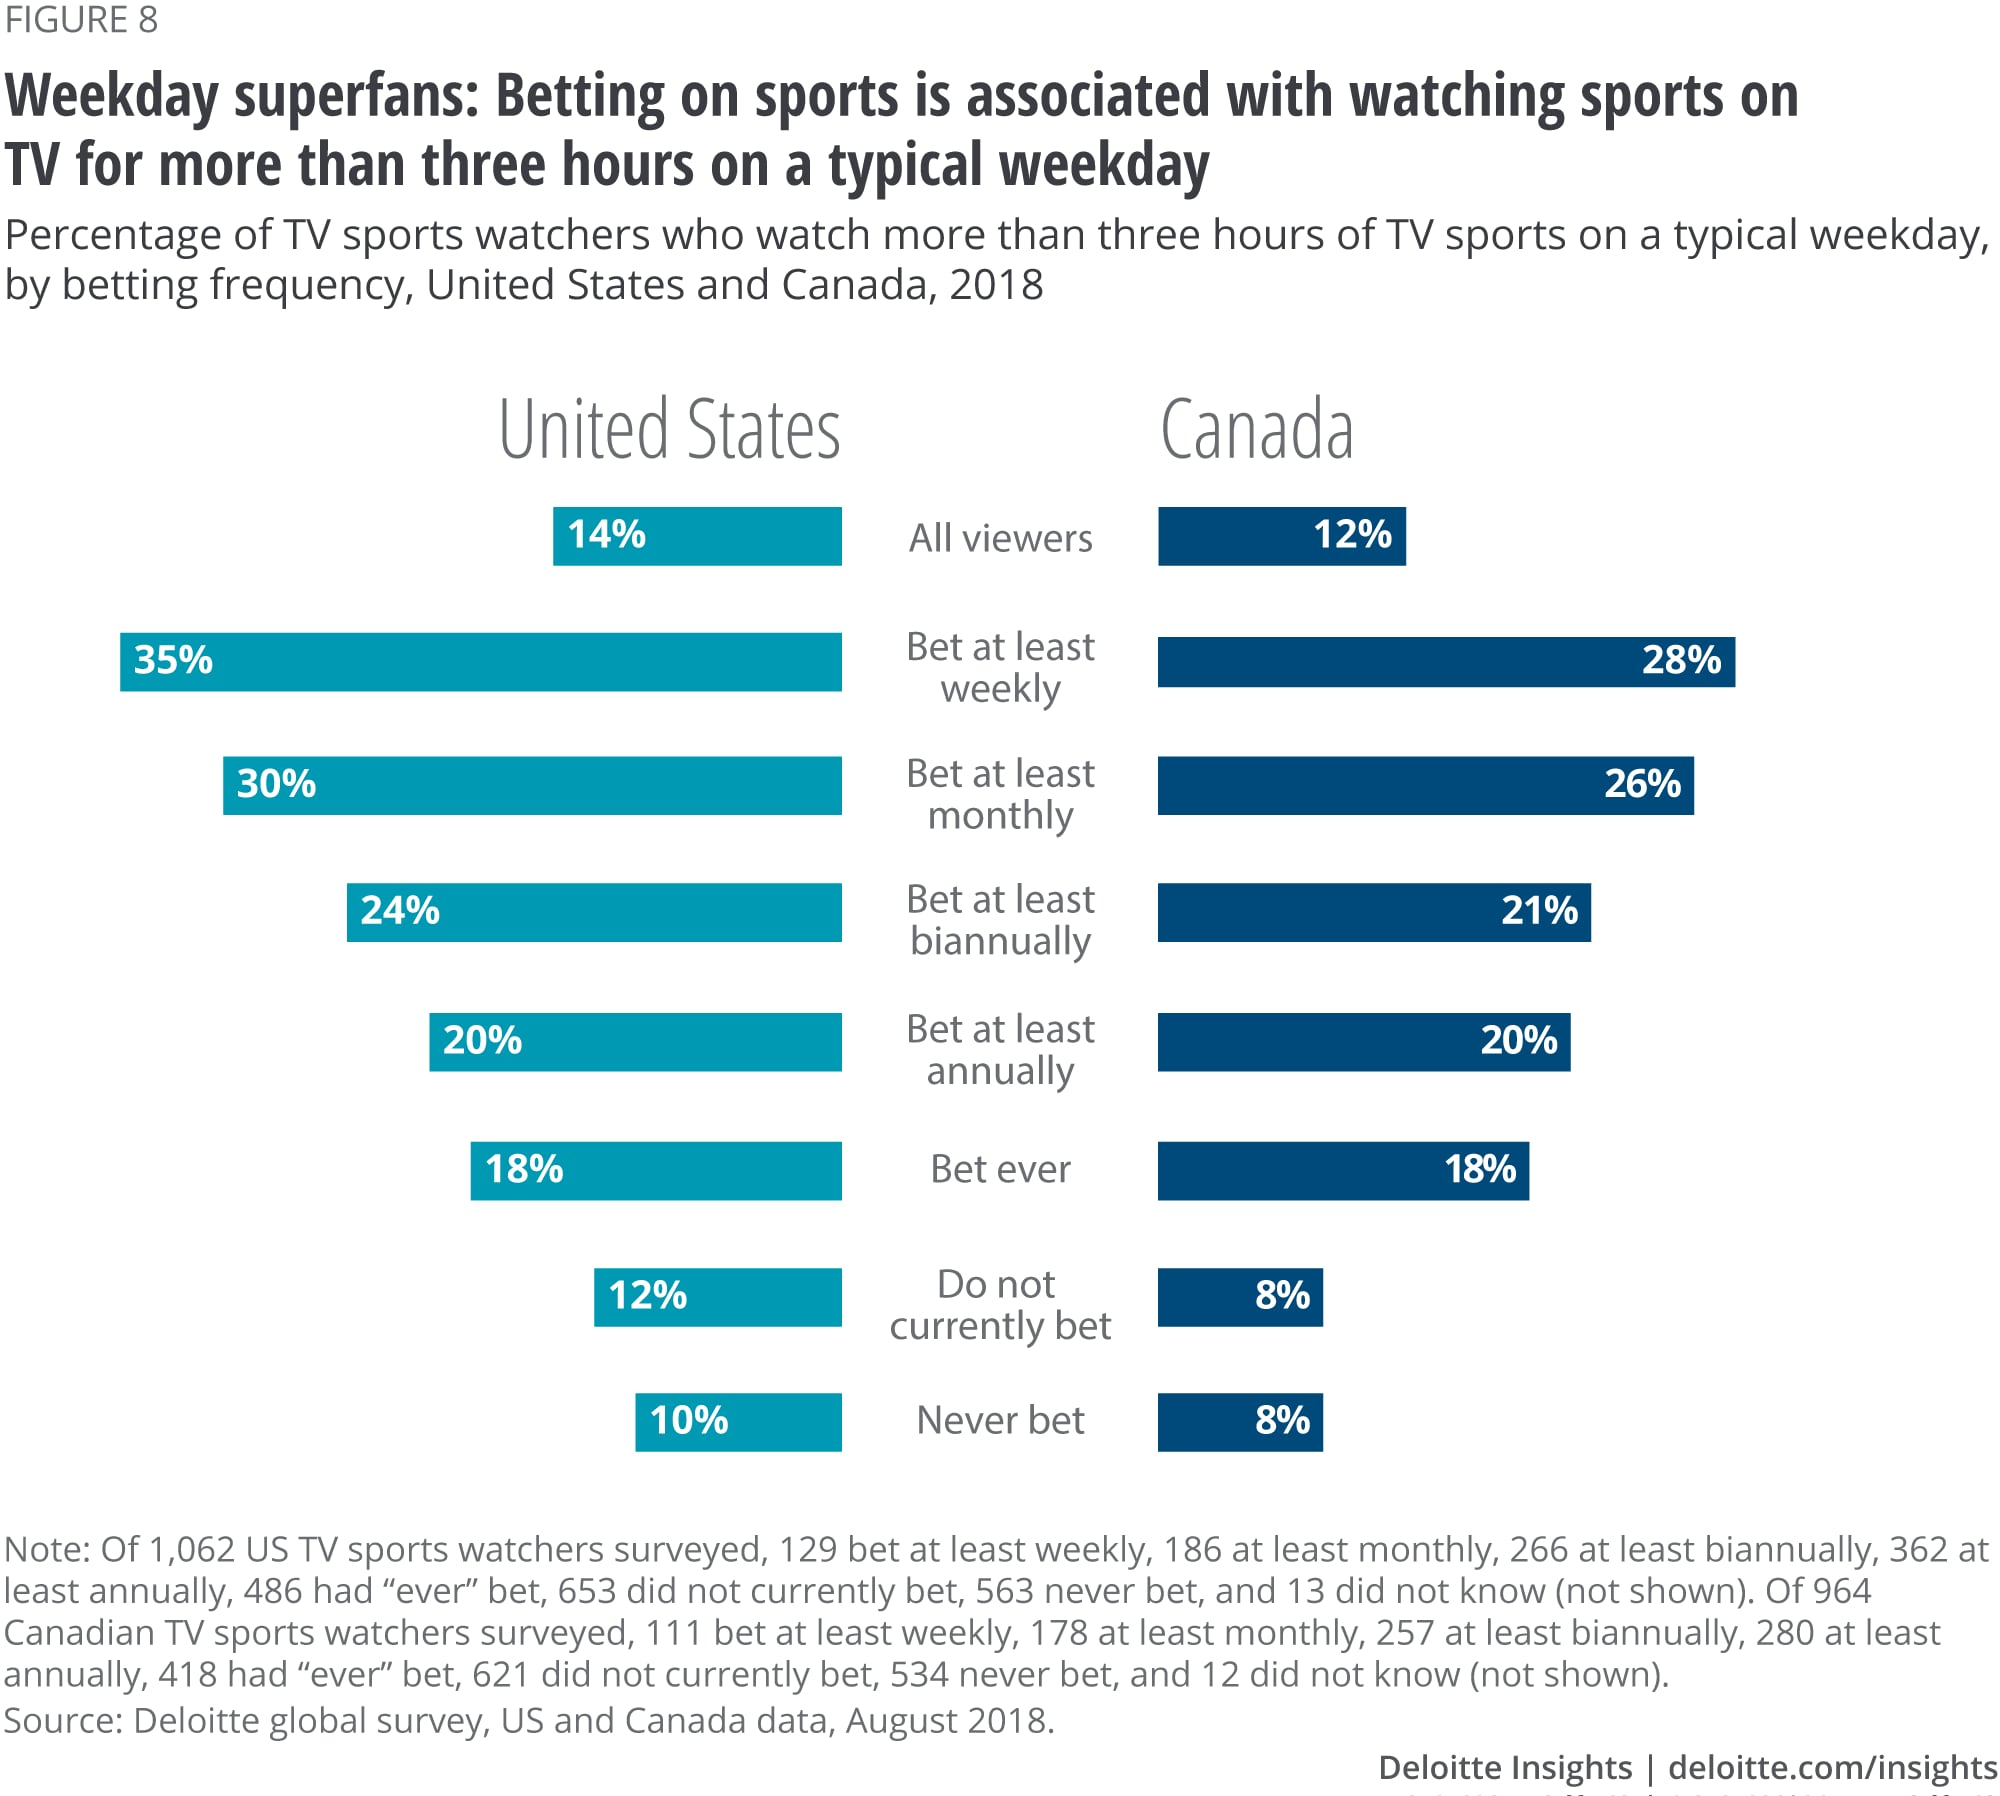 Weekday super-superfans: Betting on sports is associated with watching sports on TV for more than three hours on a typical weekday